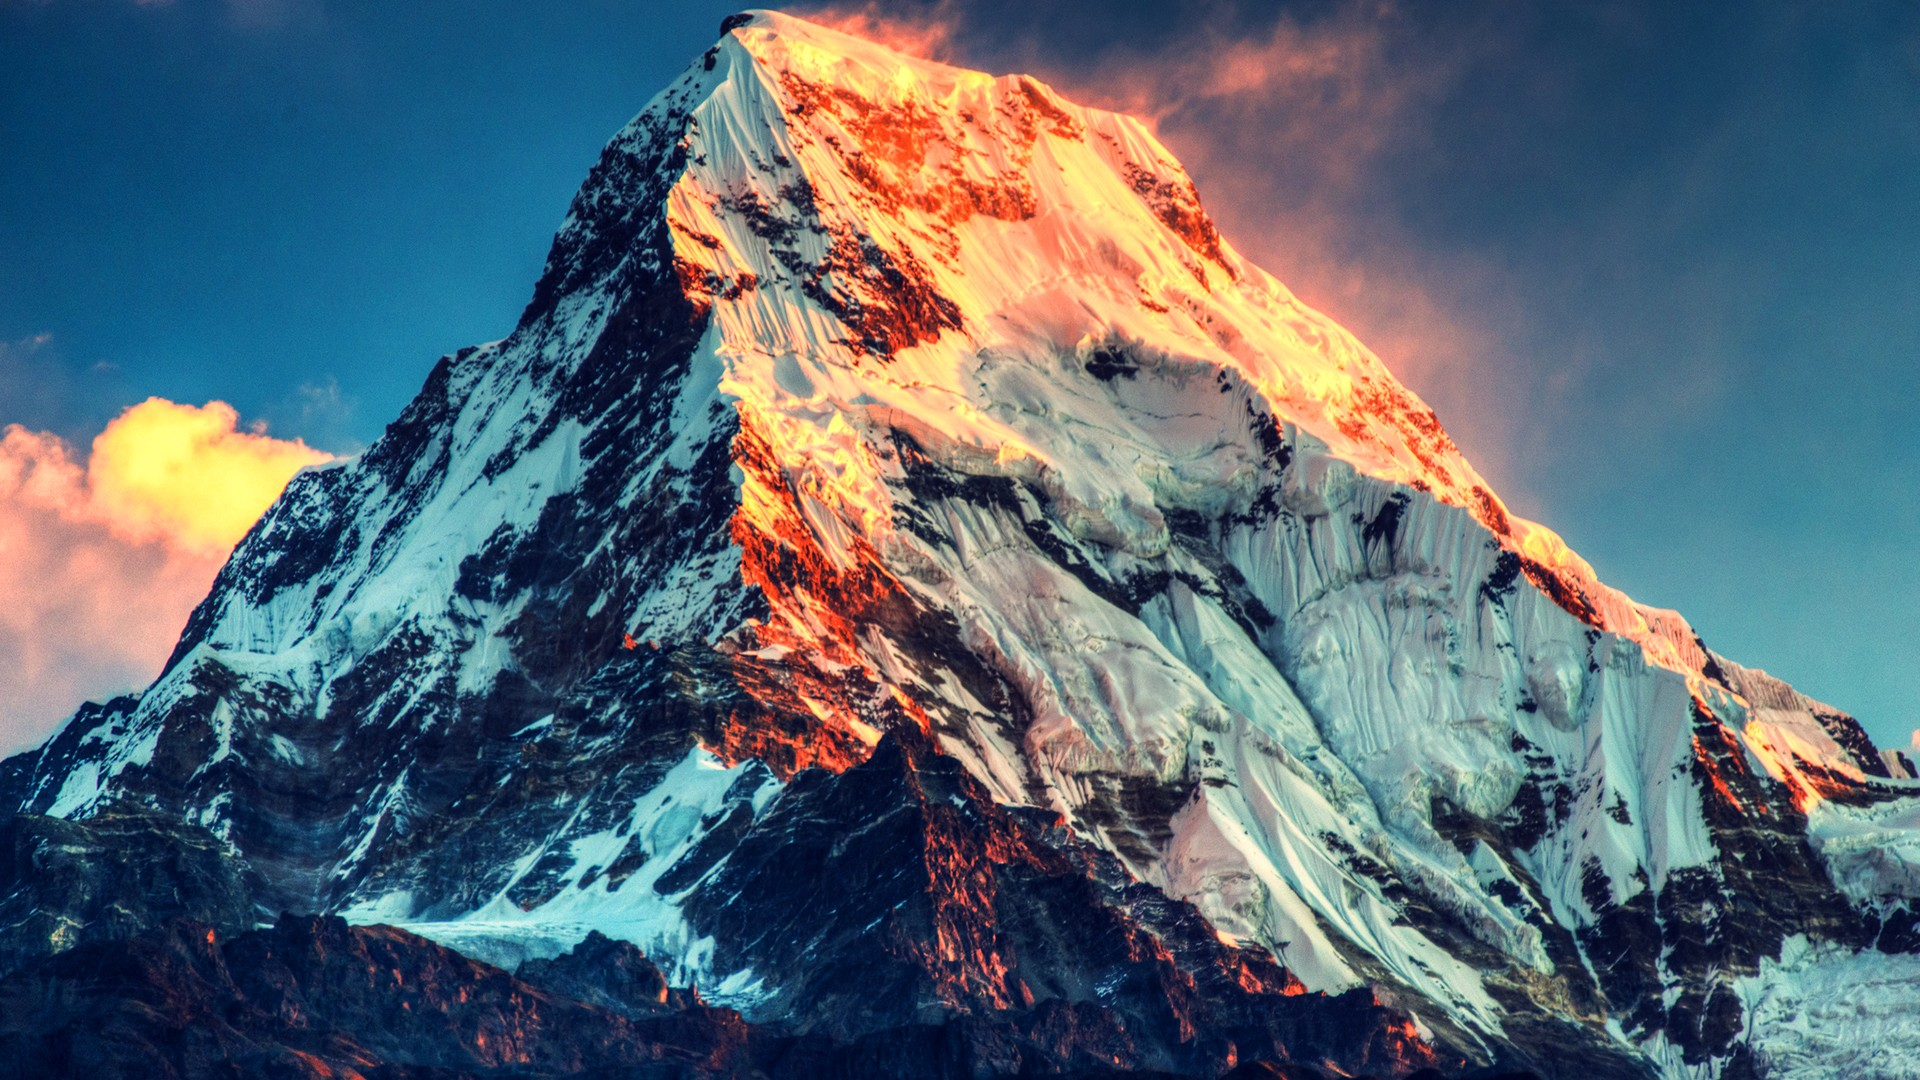 Mount Everest straddles the border of Tibet and Nepal.